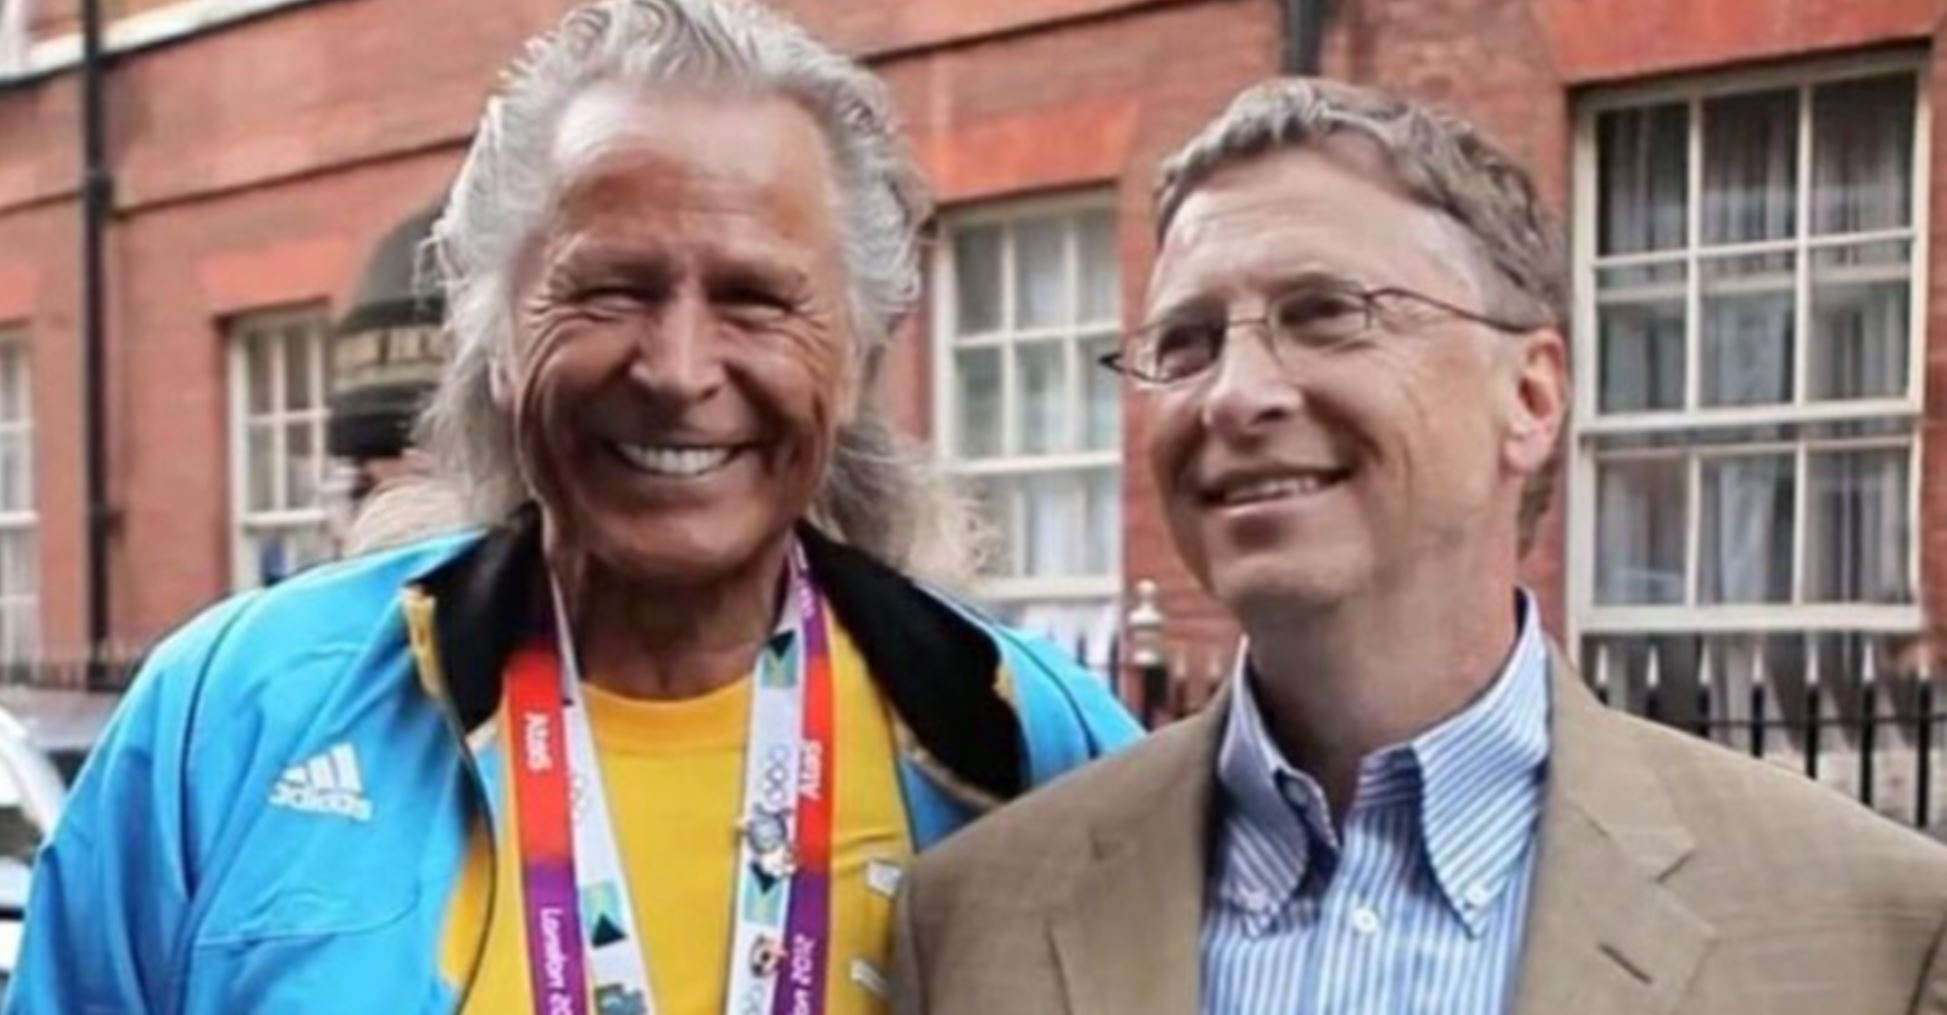 Peter Nygard, Jeffrey Epstein, and the Fashion to Sexual Assault Pipeline